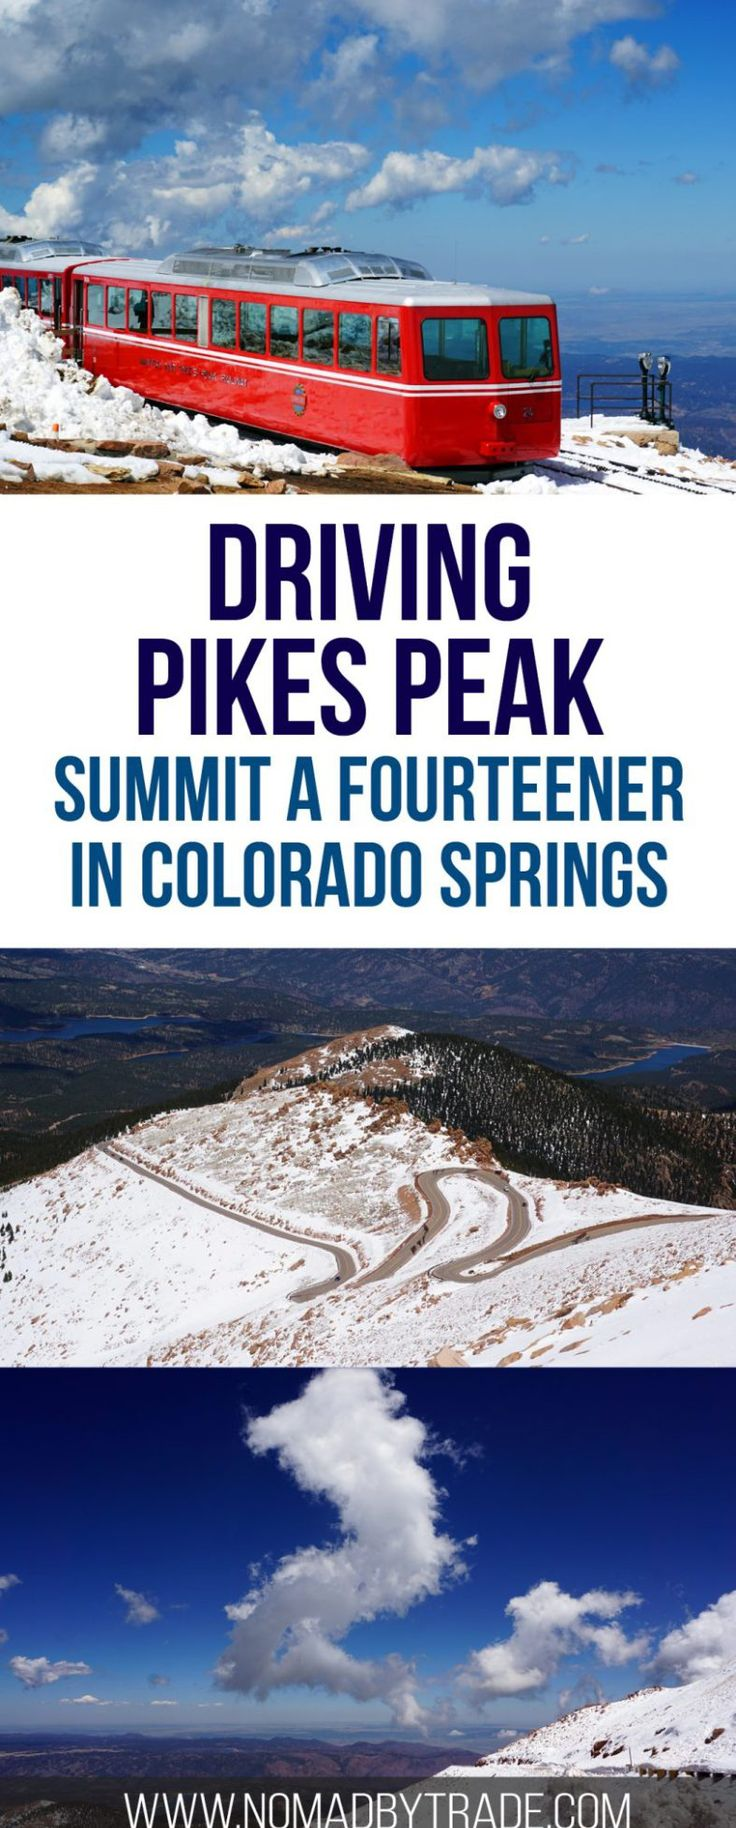 Everything you need to know about driving to the top of Pikes Peak in Colorado Springs, Colorado. Rocky Mountains | Things to do in Colorado Springs | Pikes Peak summit | Fourteeners | Colorado attractions | #Colorado | #ColoradoSprings | #PikesPeak